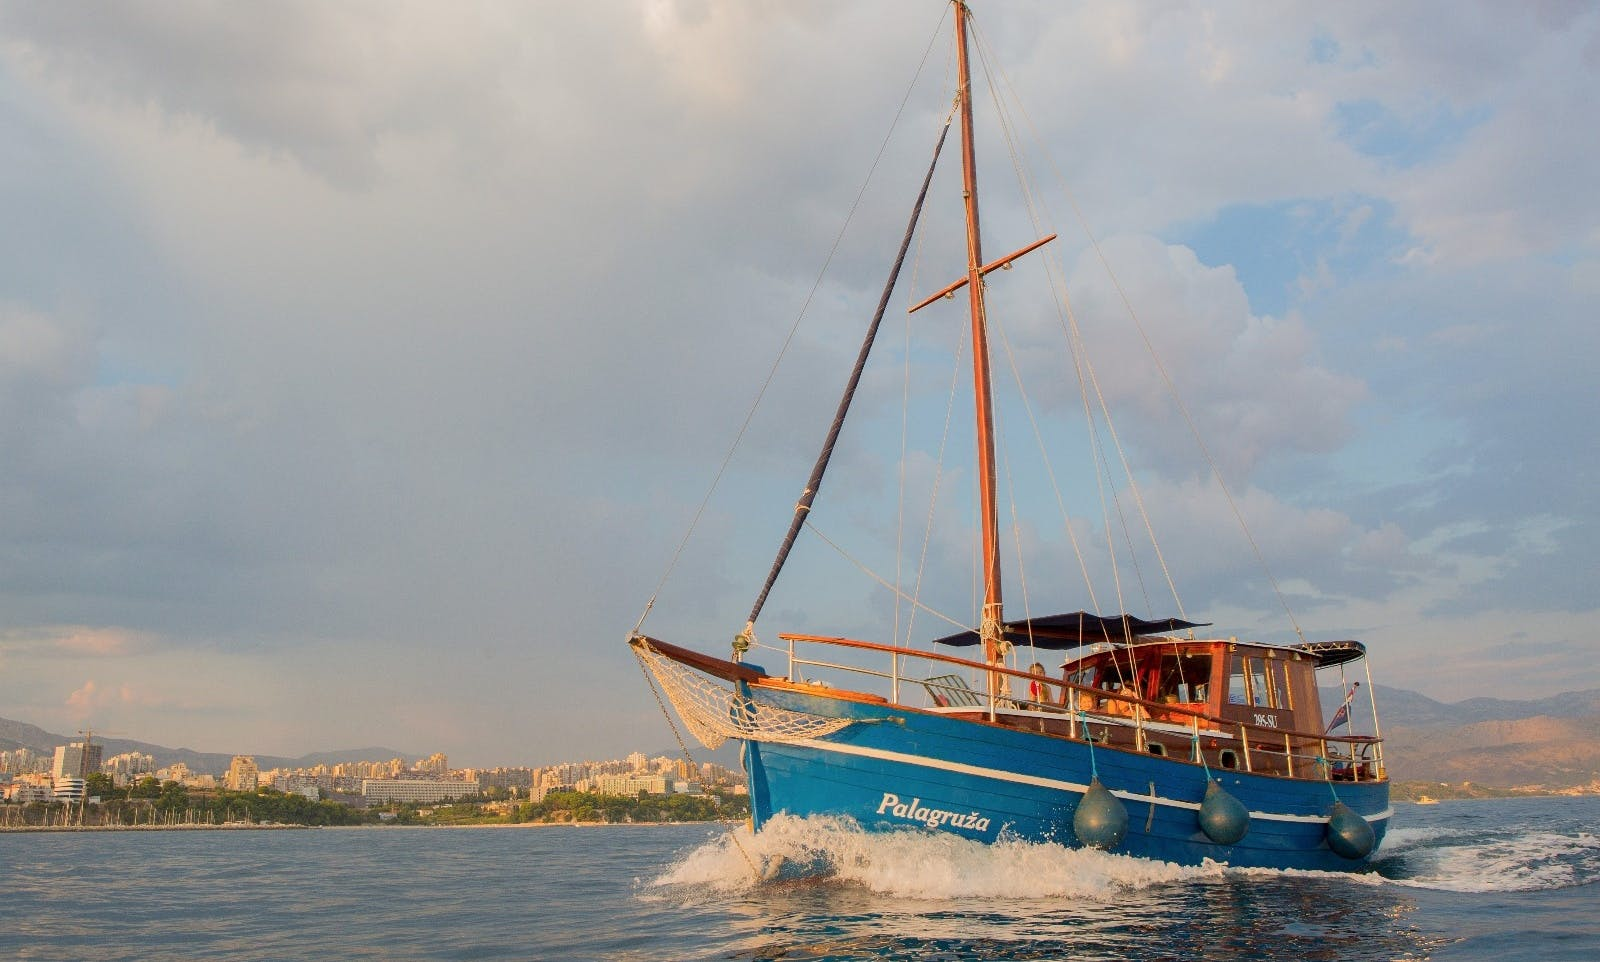 Unforgettable Boating Vacation in Split, Croatia on this Beautiful Yacht!